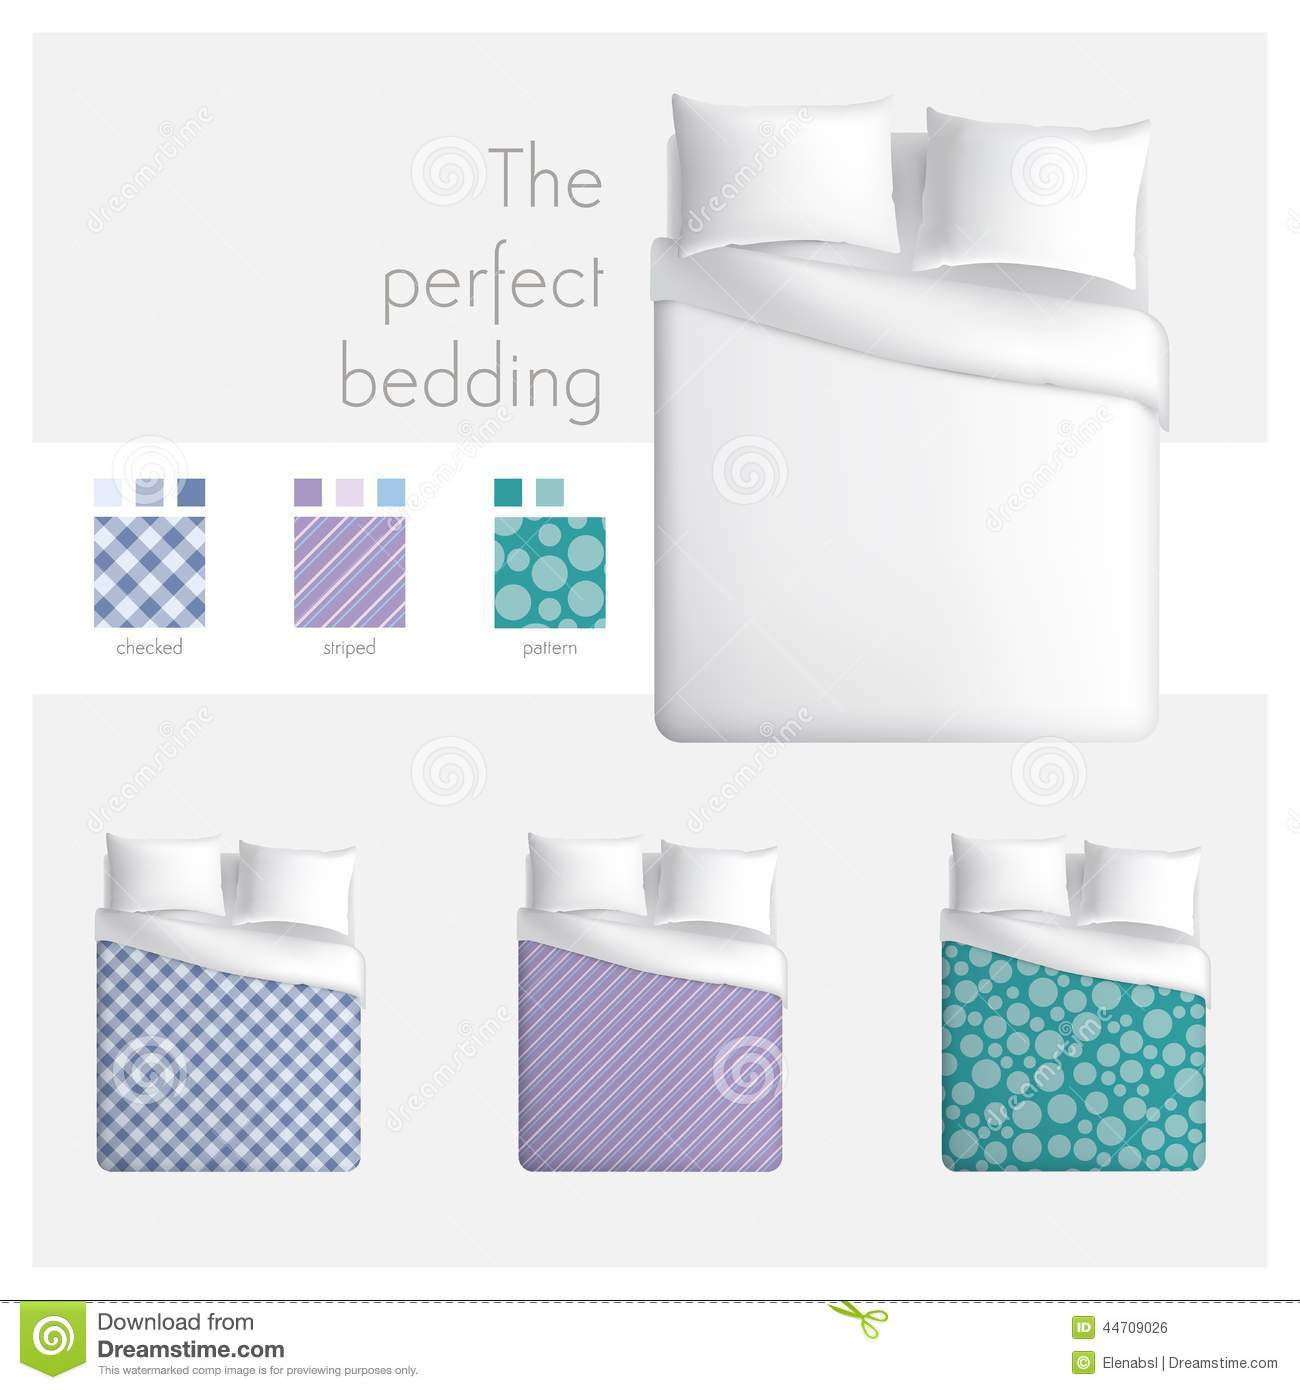 The Perfect Bedding Stock Vector - Image: 44709026